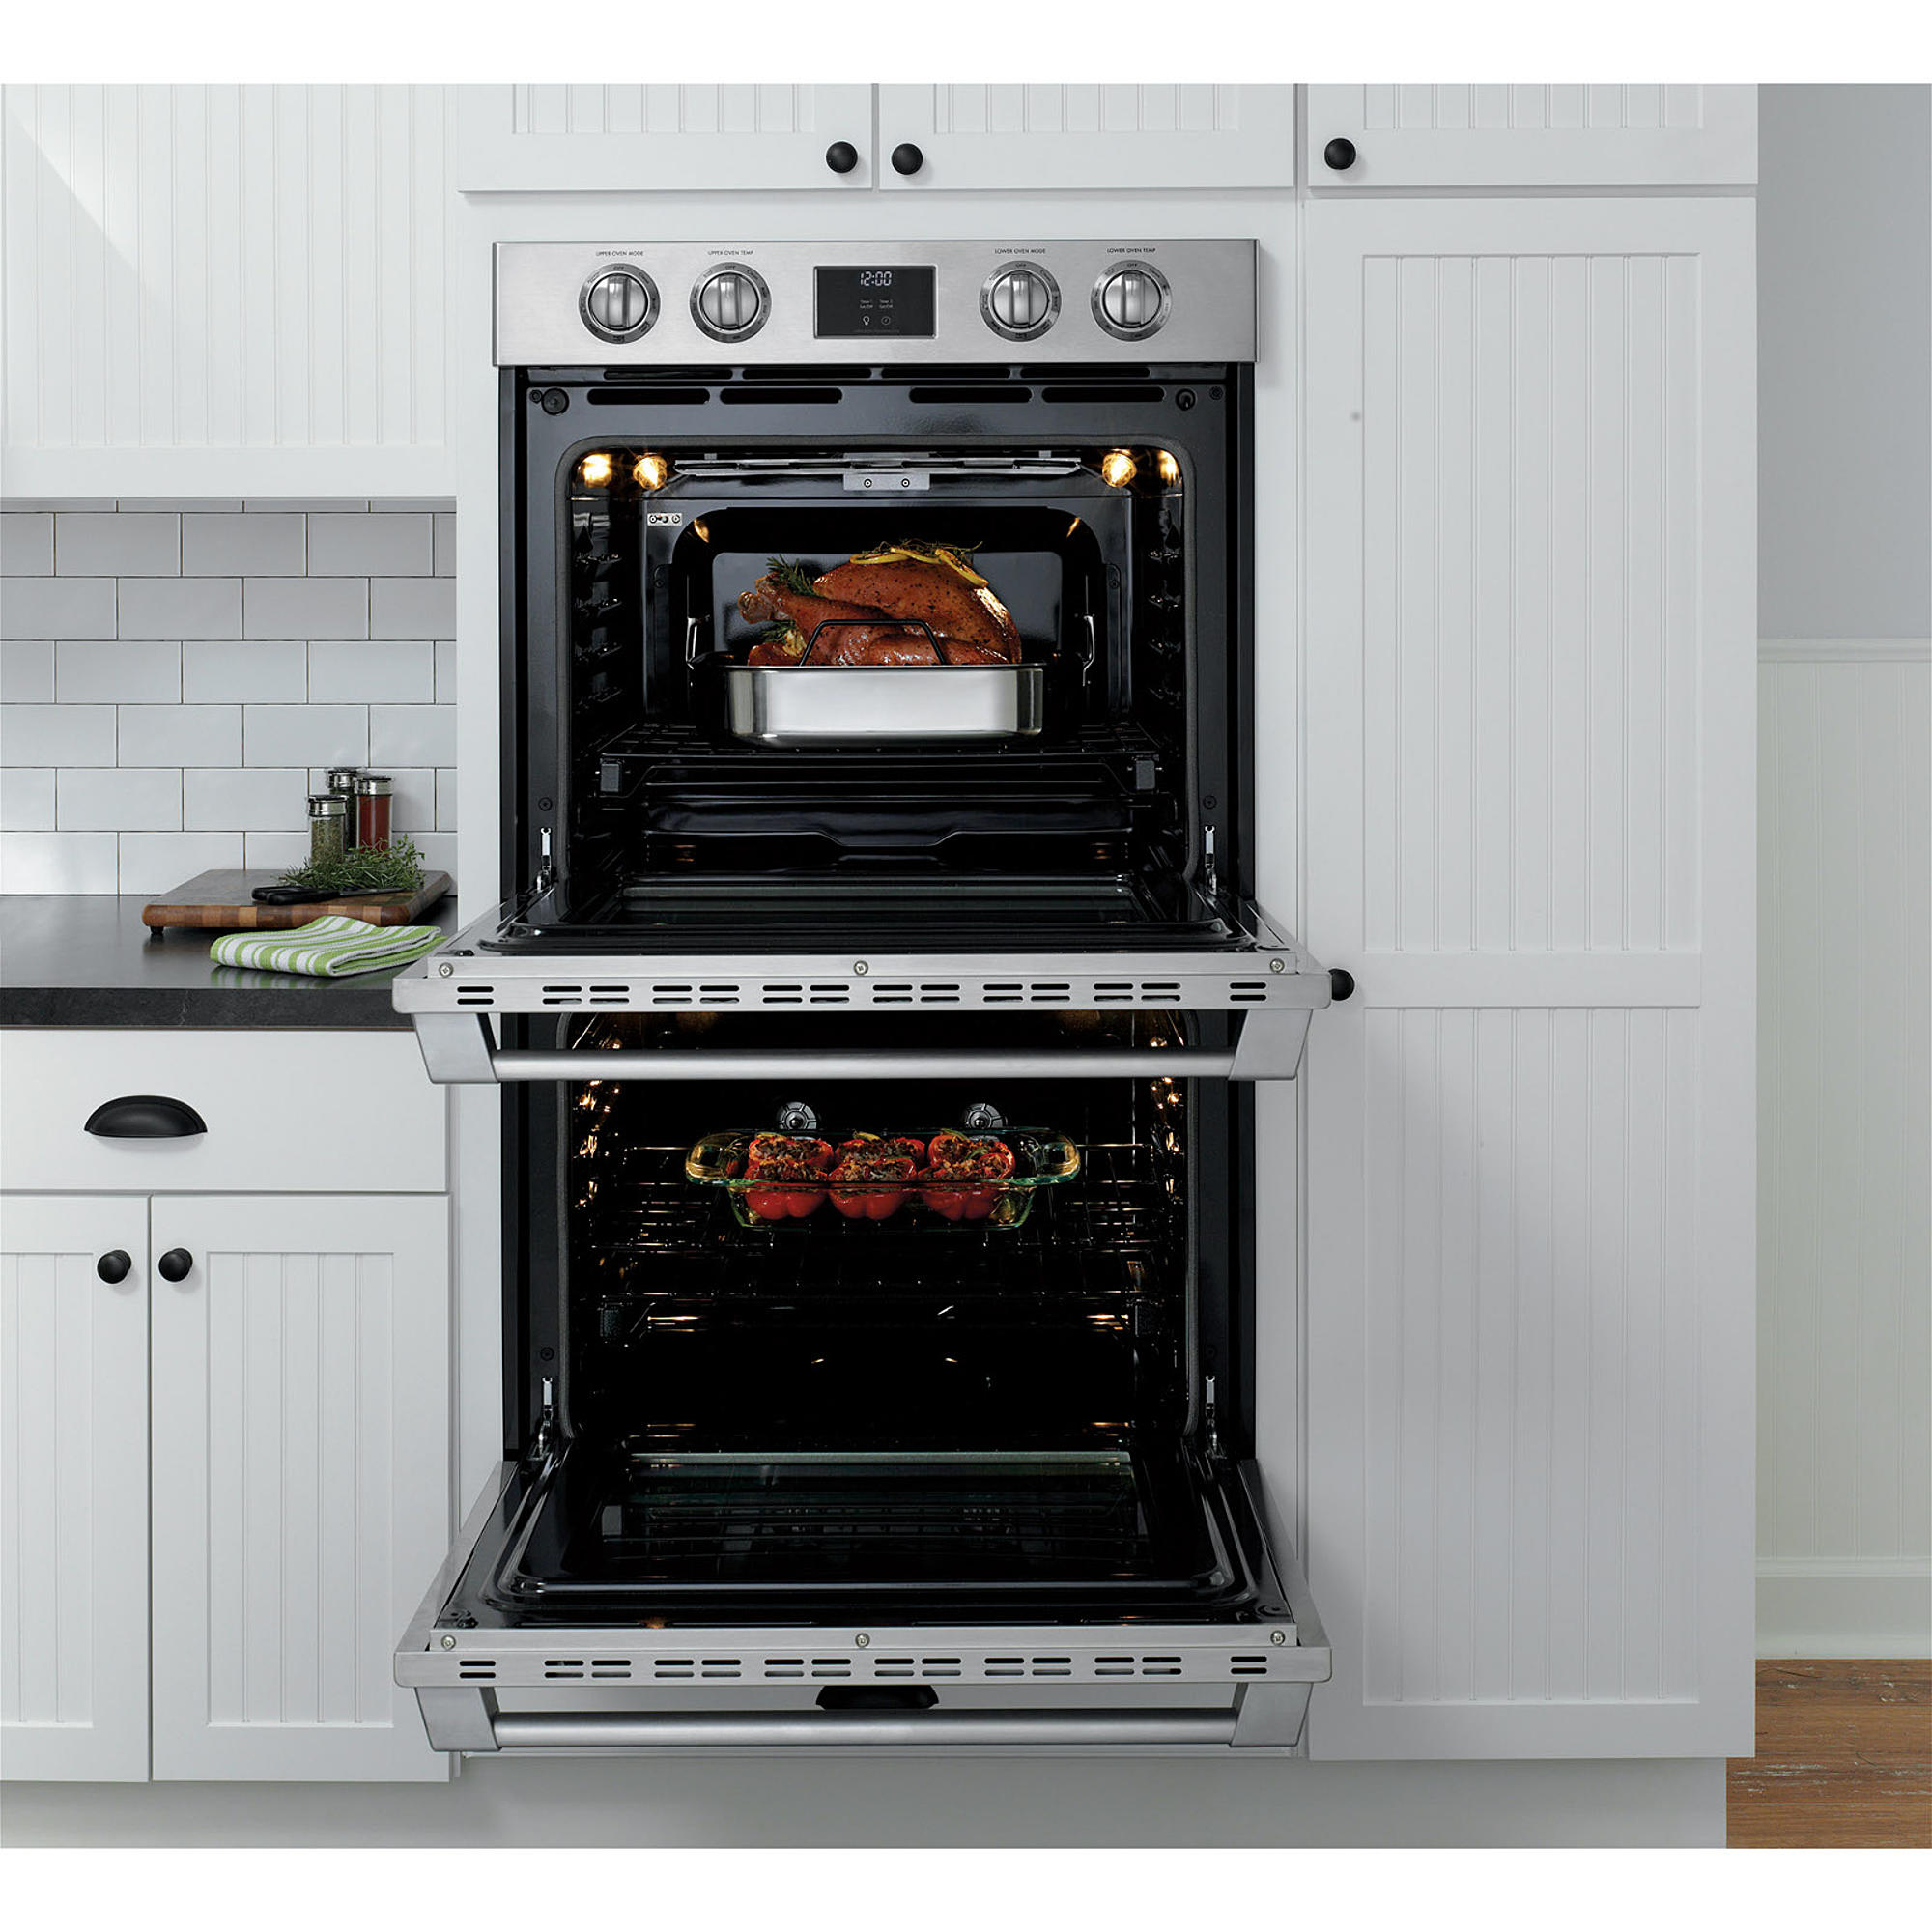 How to correct an oven's temperature setting | Tips and tricks